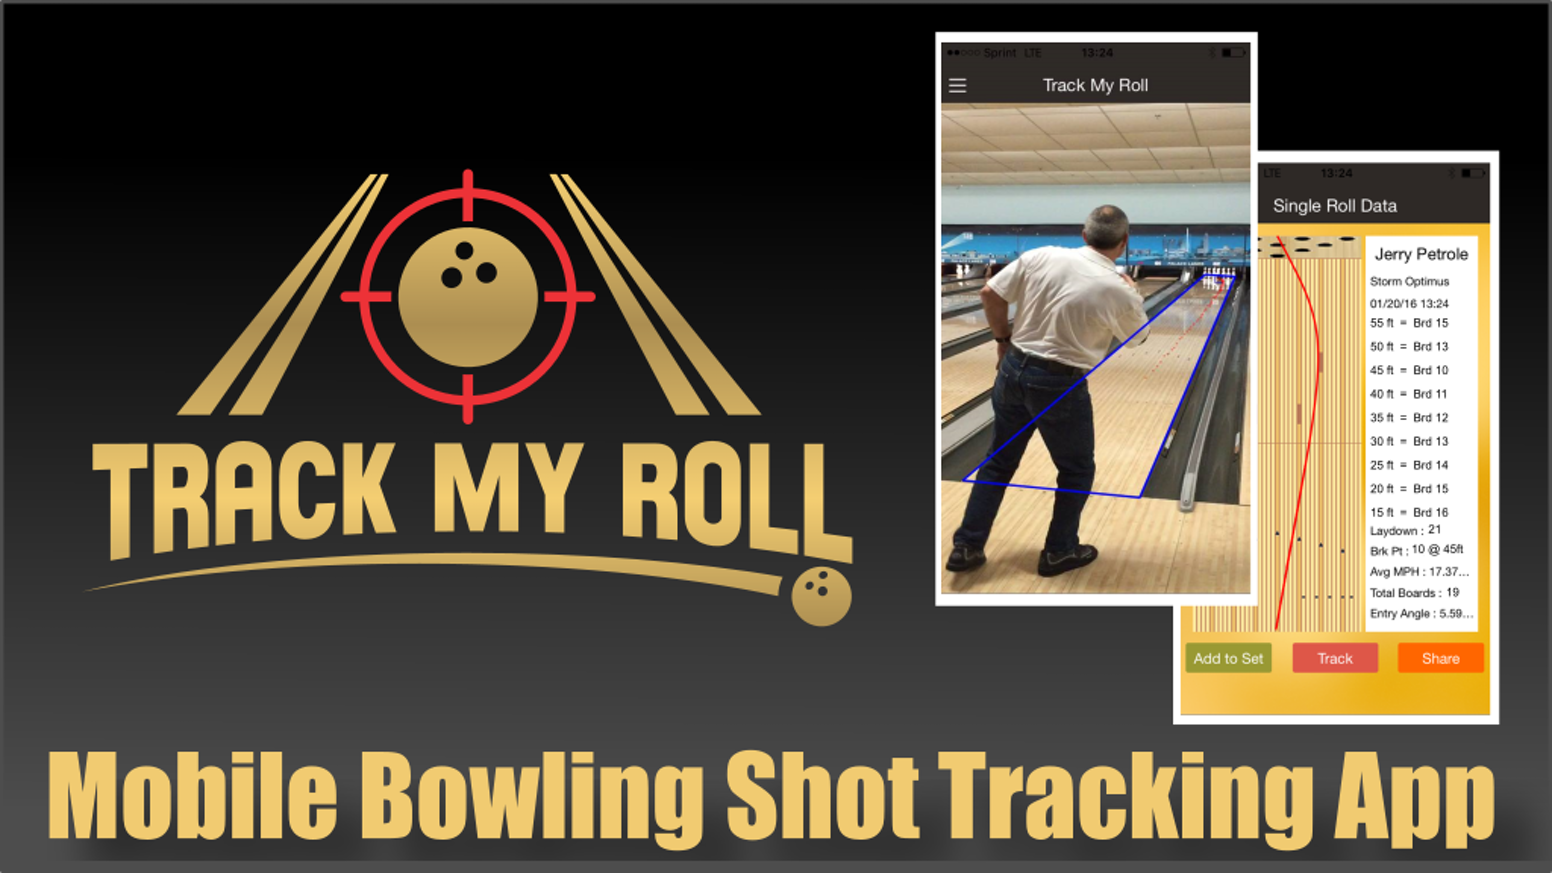 This app uses a state of the art tracking system to determine position & speed of a bowling shot from your mobile device. No tripods!!